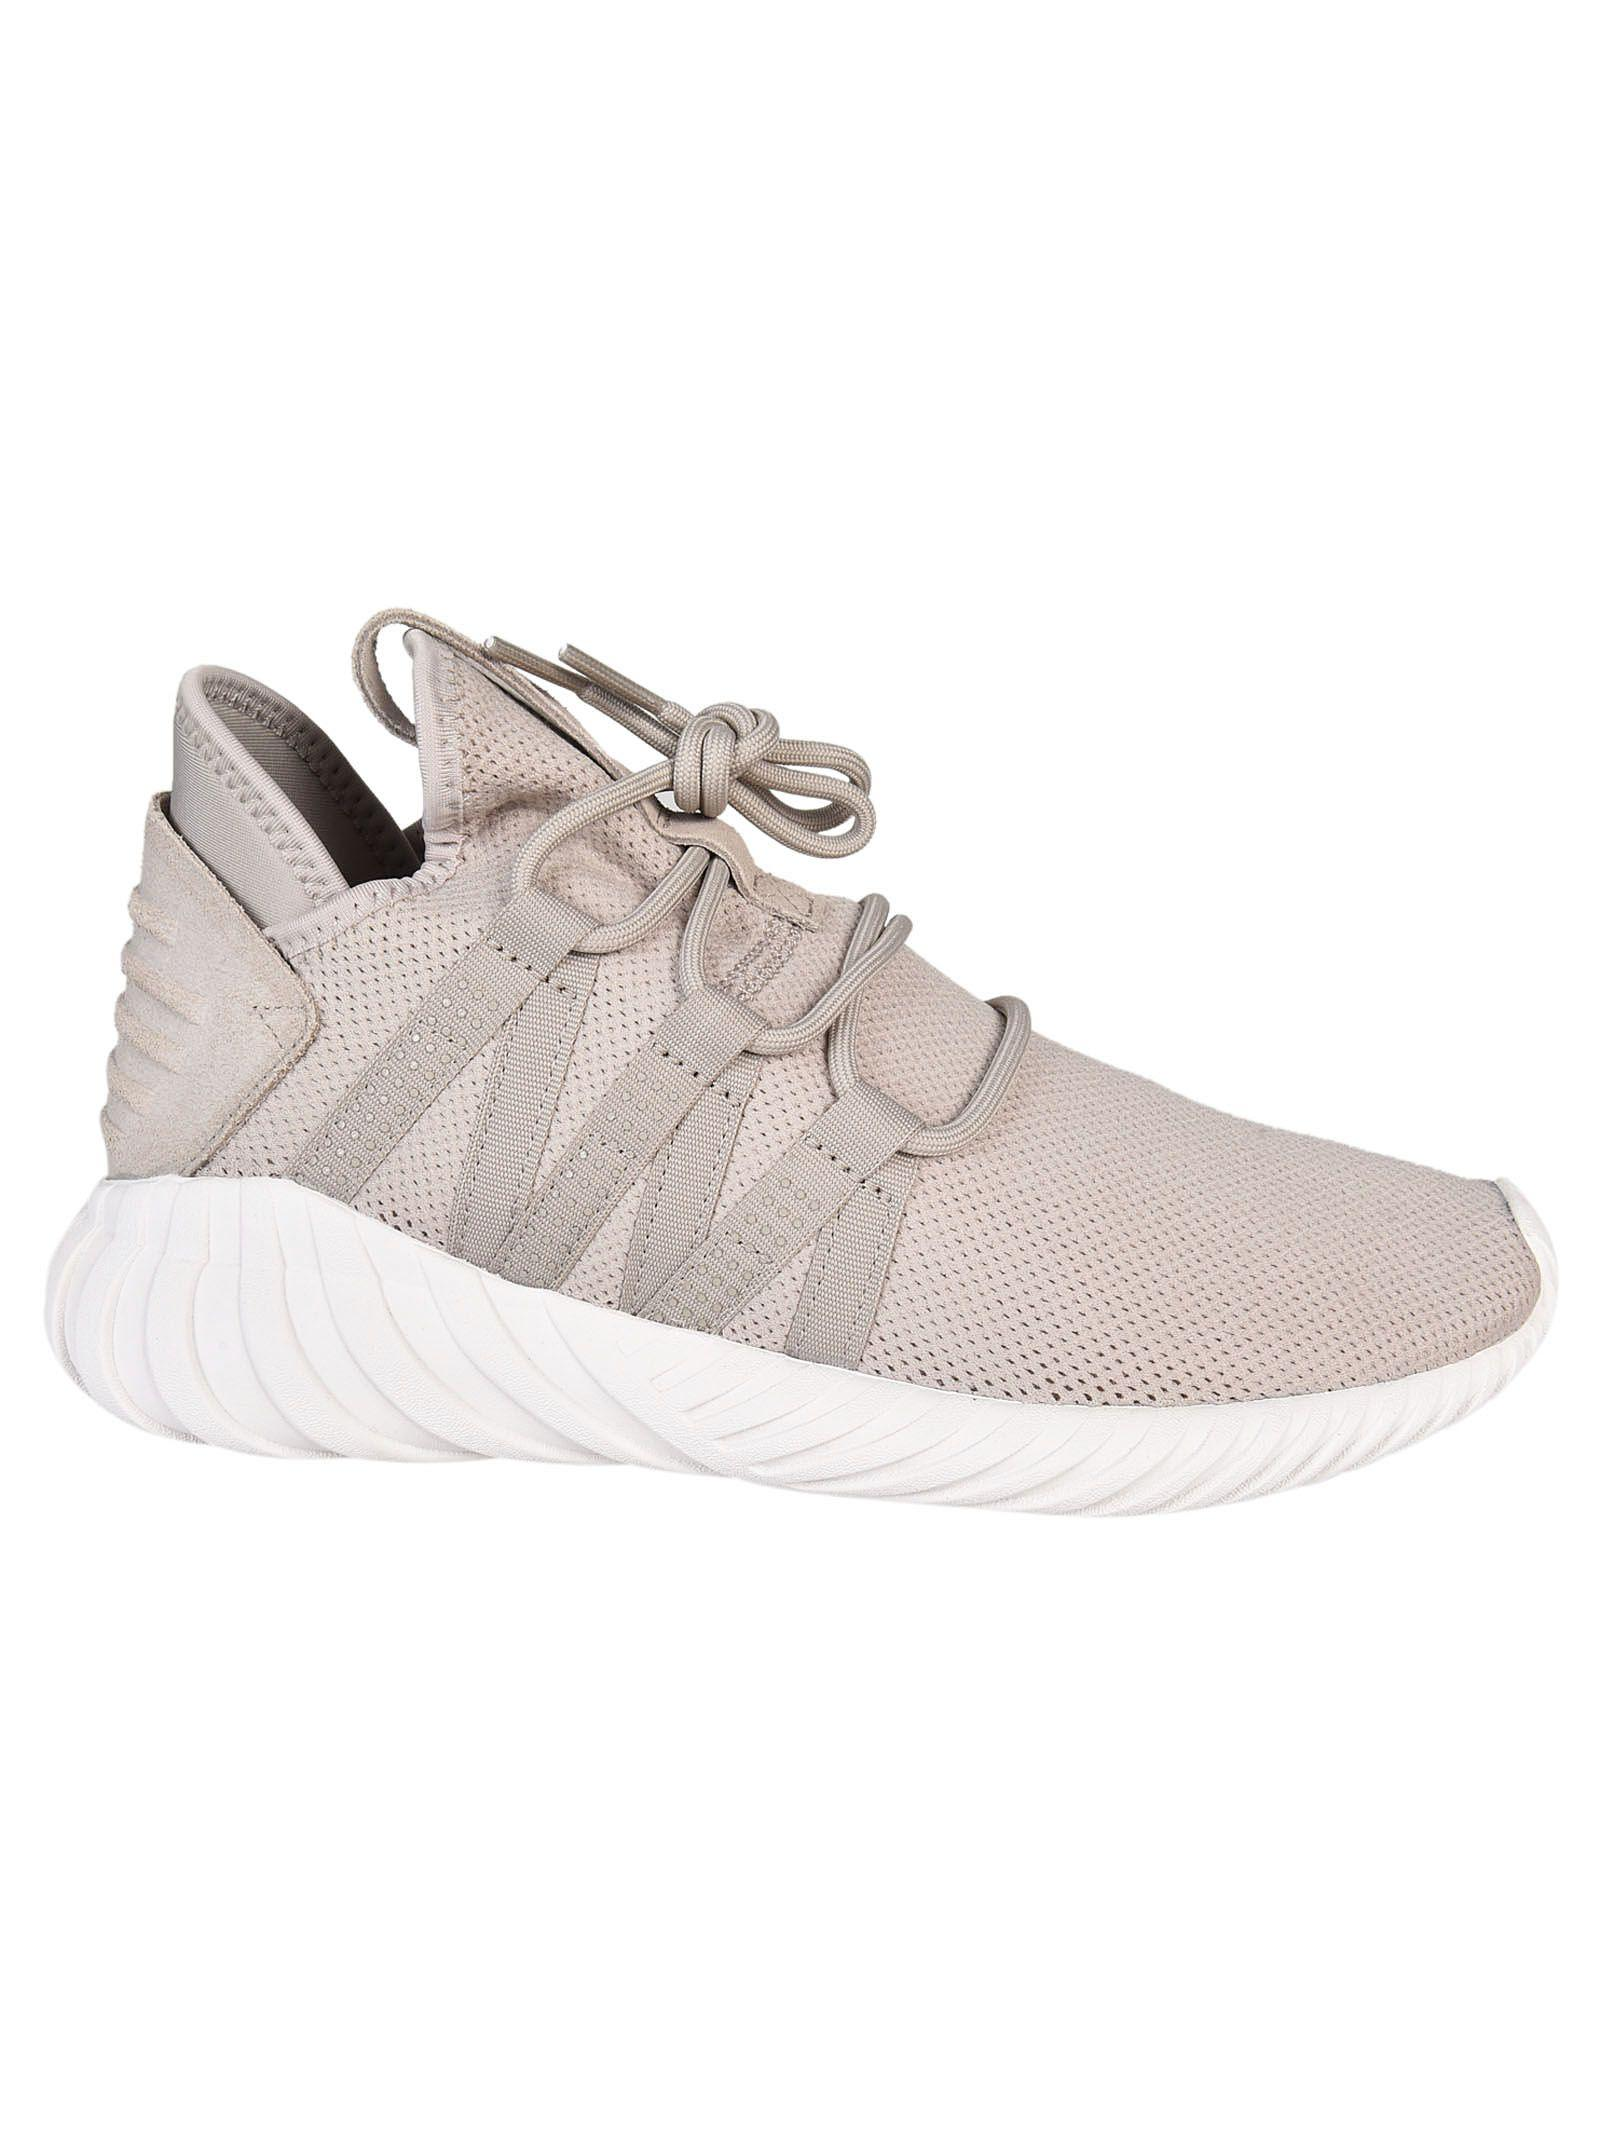 5c3936fdbc2e Adidas Originals Tubular Dawn Sneakers In Light Brown Crystal White ...